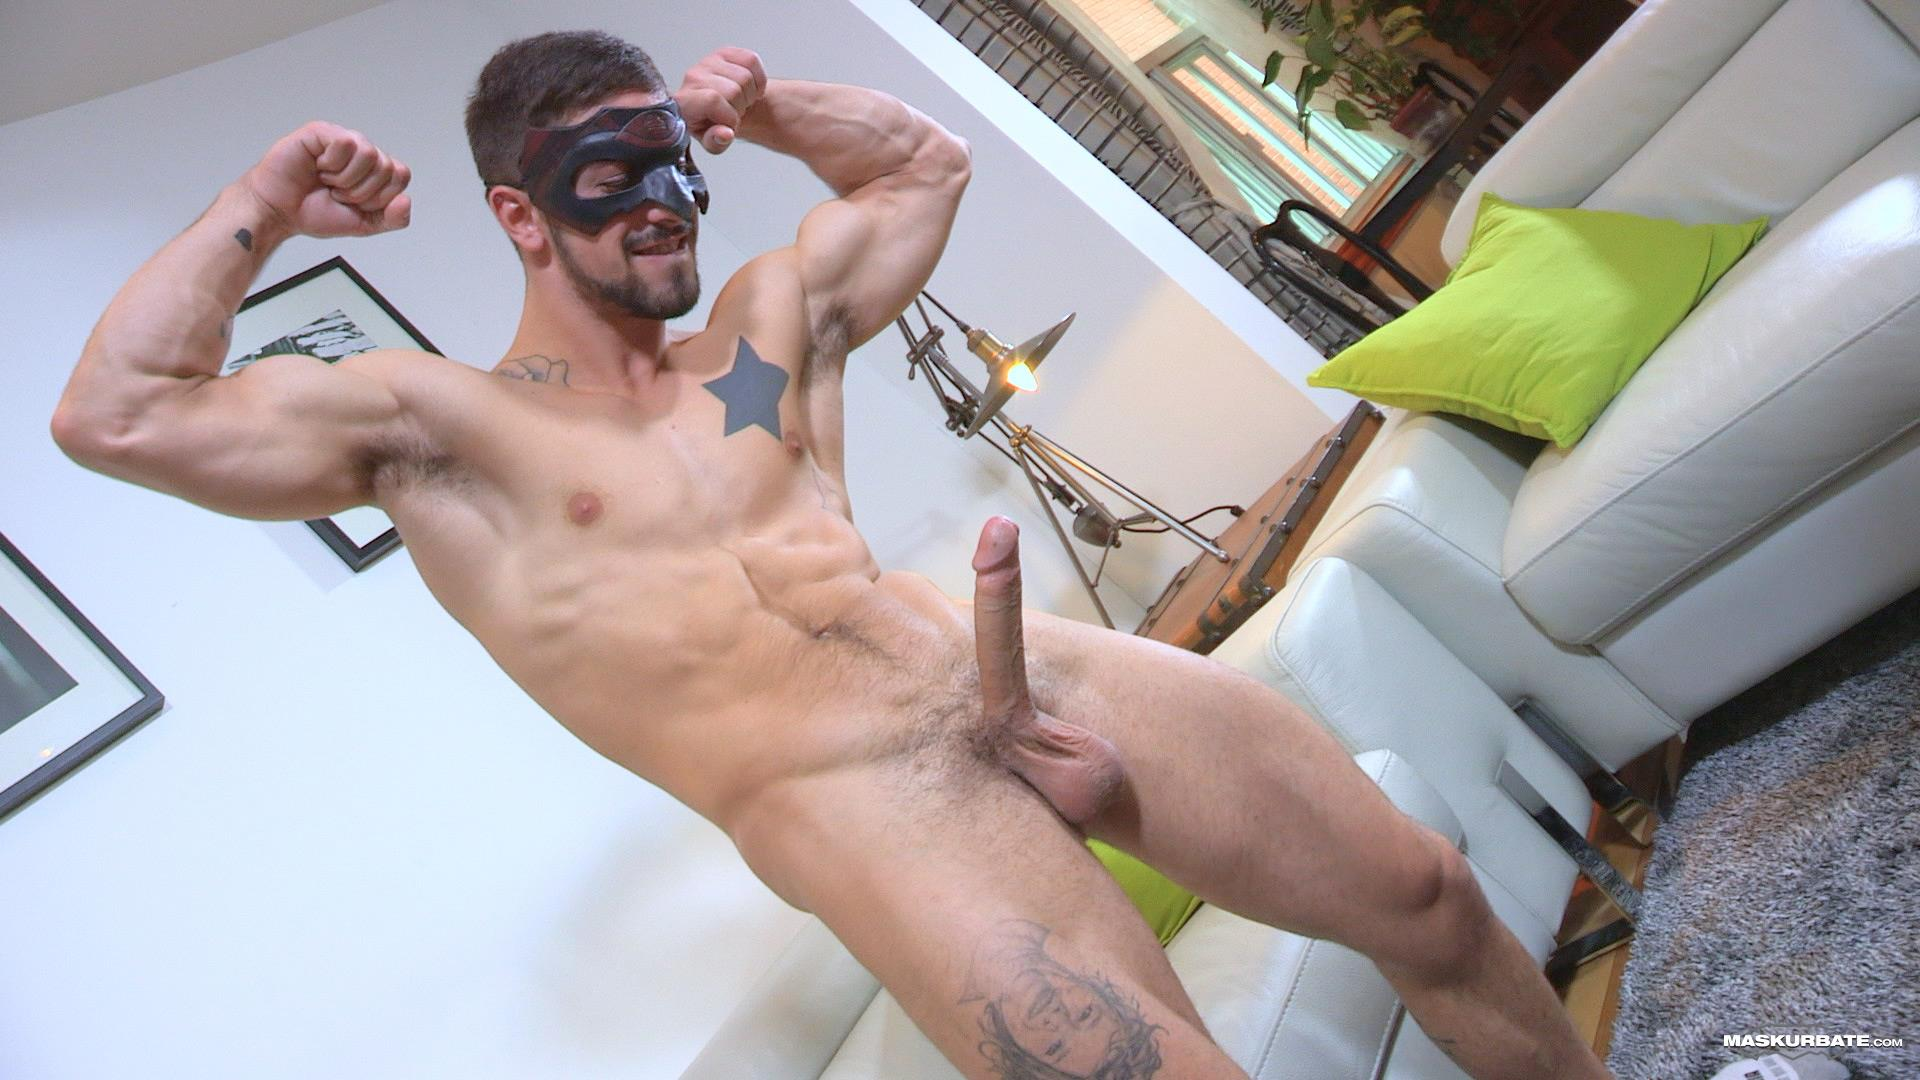 Maskurbate-Carl-Straight-Muscle-Jock-With-A-Big-Cock-Amateur-Gay-Porn-10 Straight Muscle Hunk Gets His First Blow Job From Another Guy